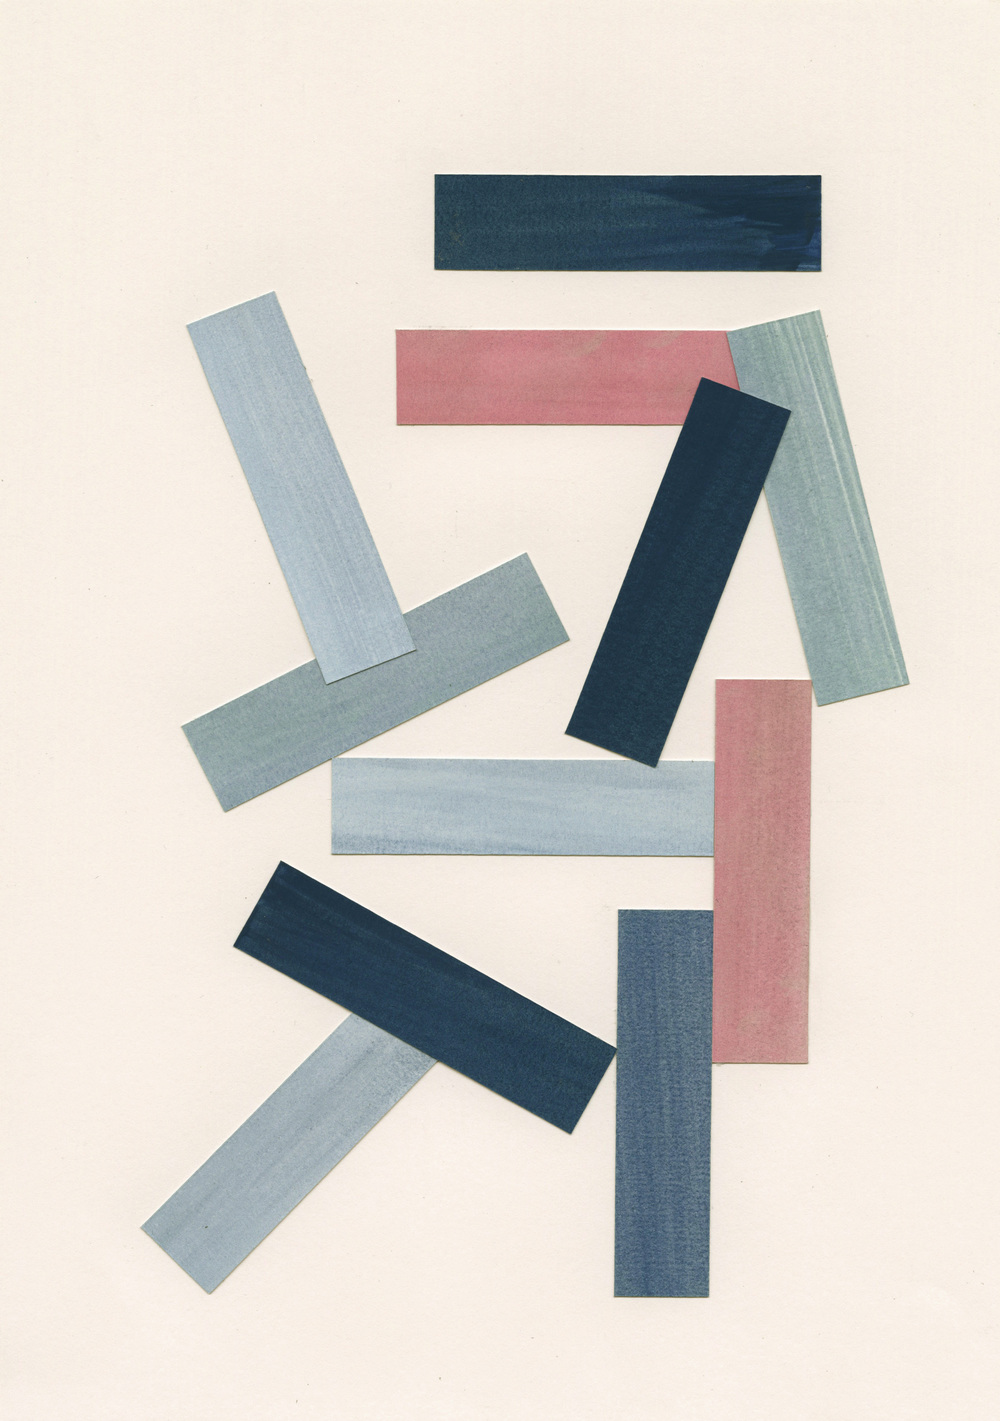 Liam Stevens   Rectilinear Form  No.1 (Written Form)  Gouache on paper, 21 x 29.7cm, 2014 Framed: 28.5 x 37cm £490   Enquire